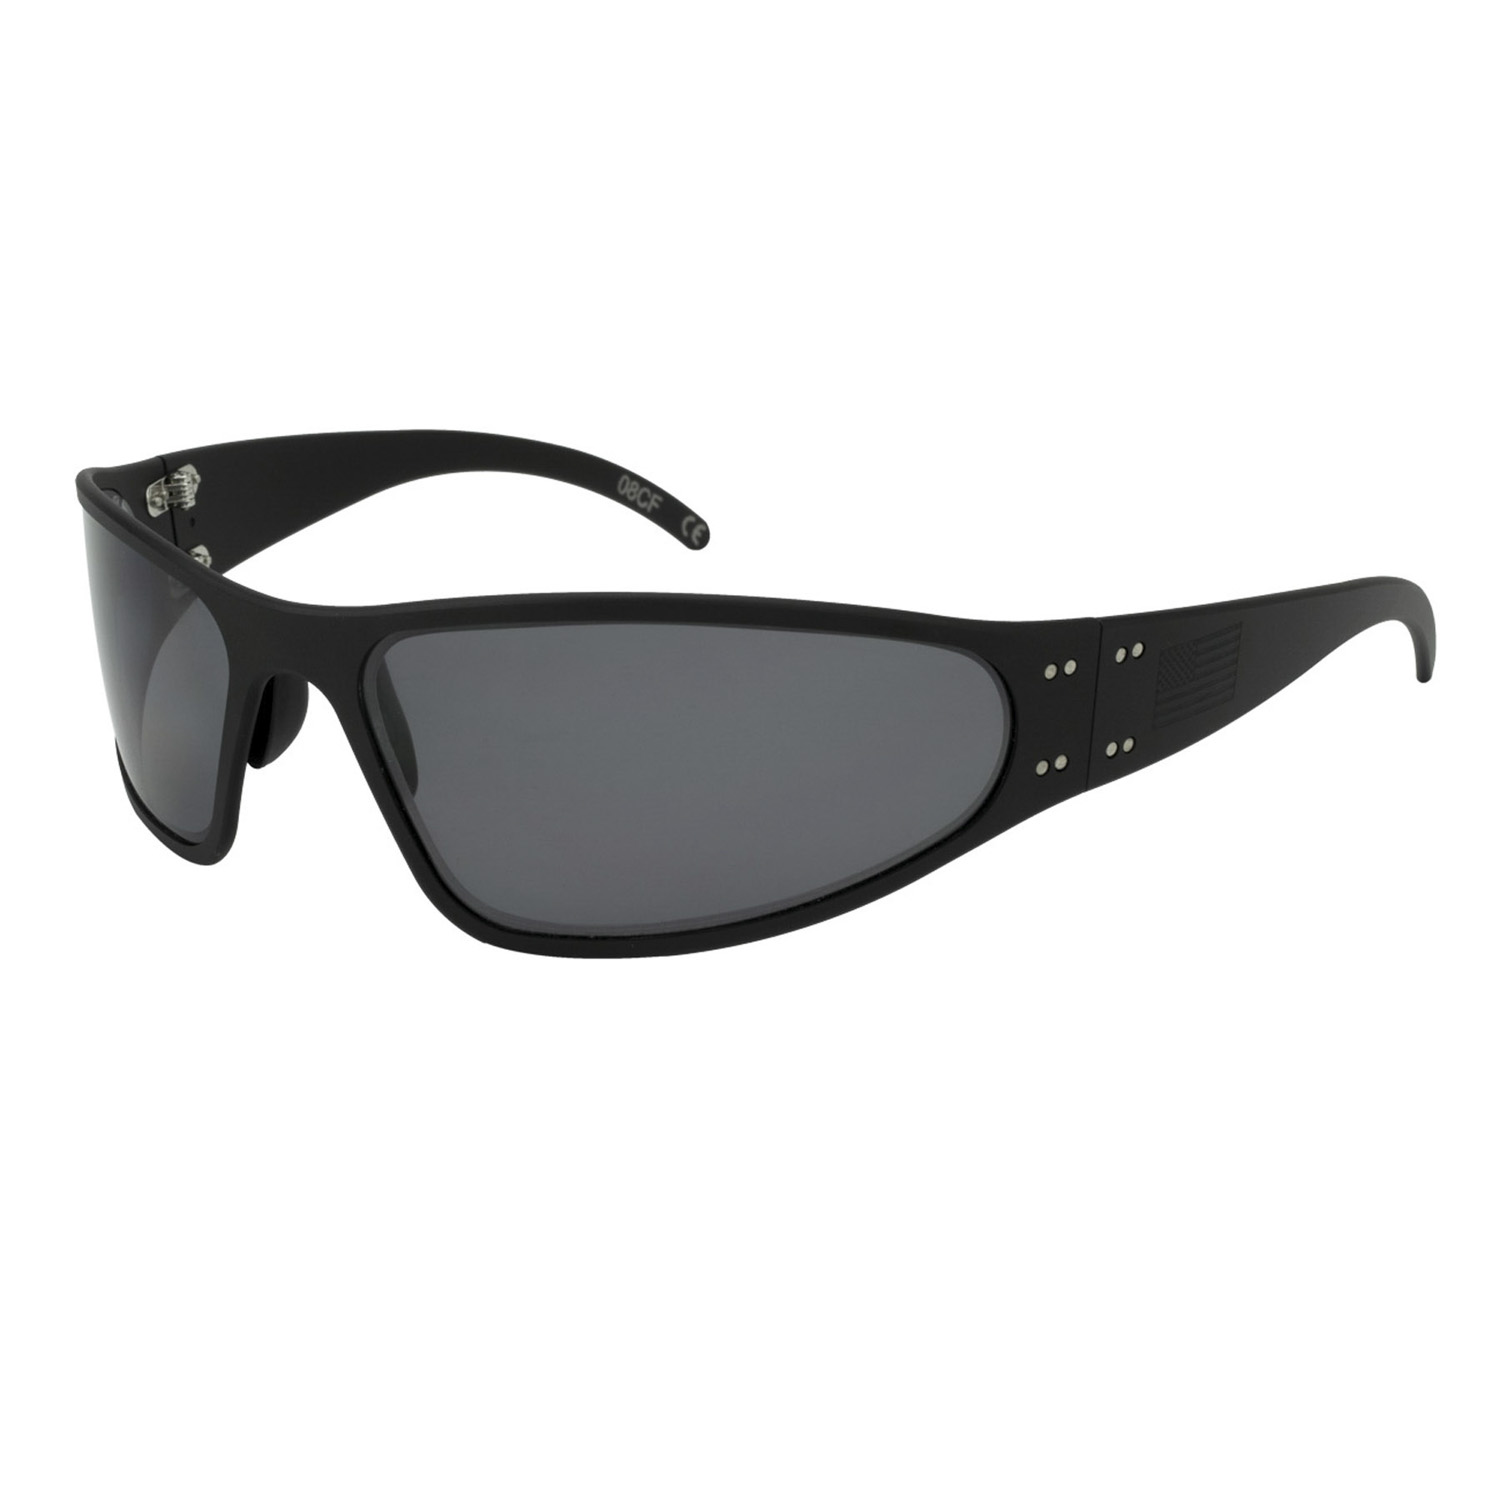 Gatorz Wraptor Patriot Edition Sunglasses